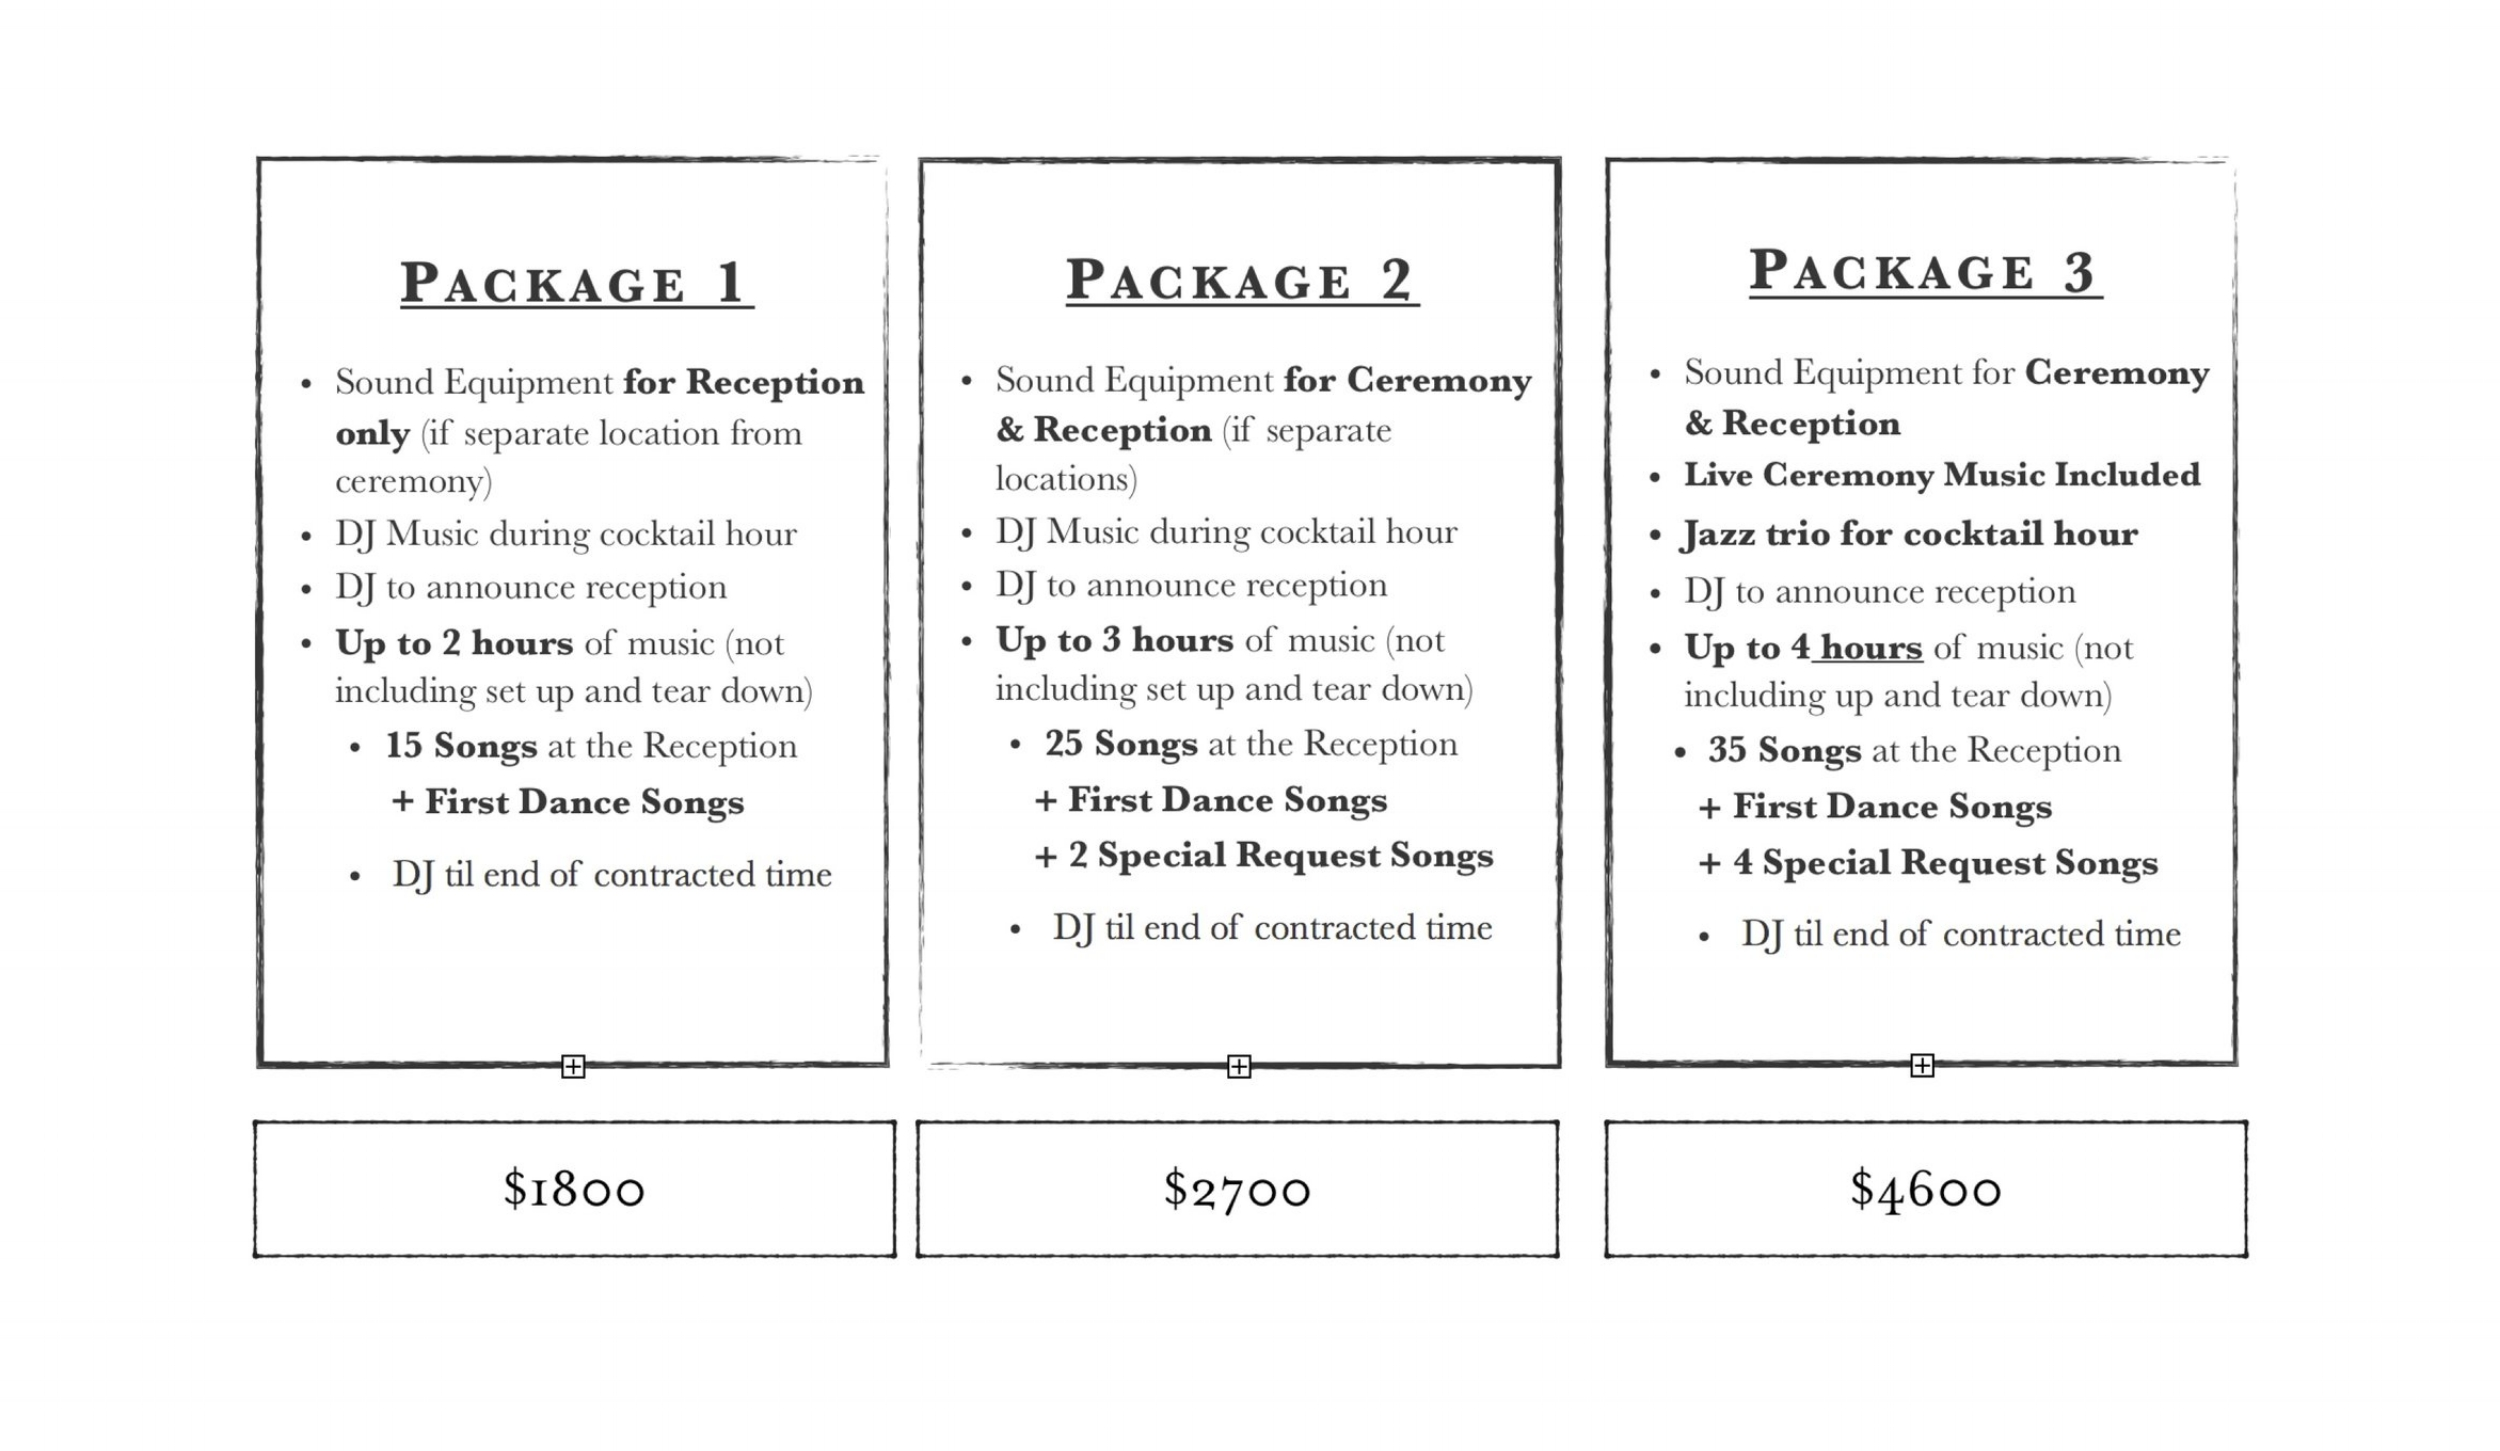 Pricing (Space).jpg